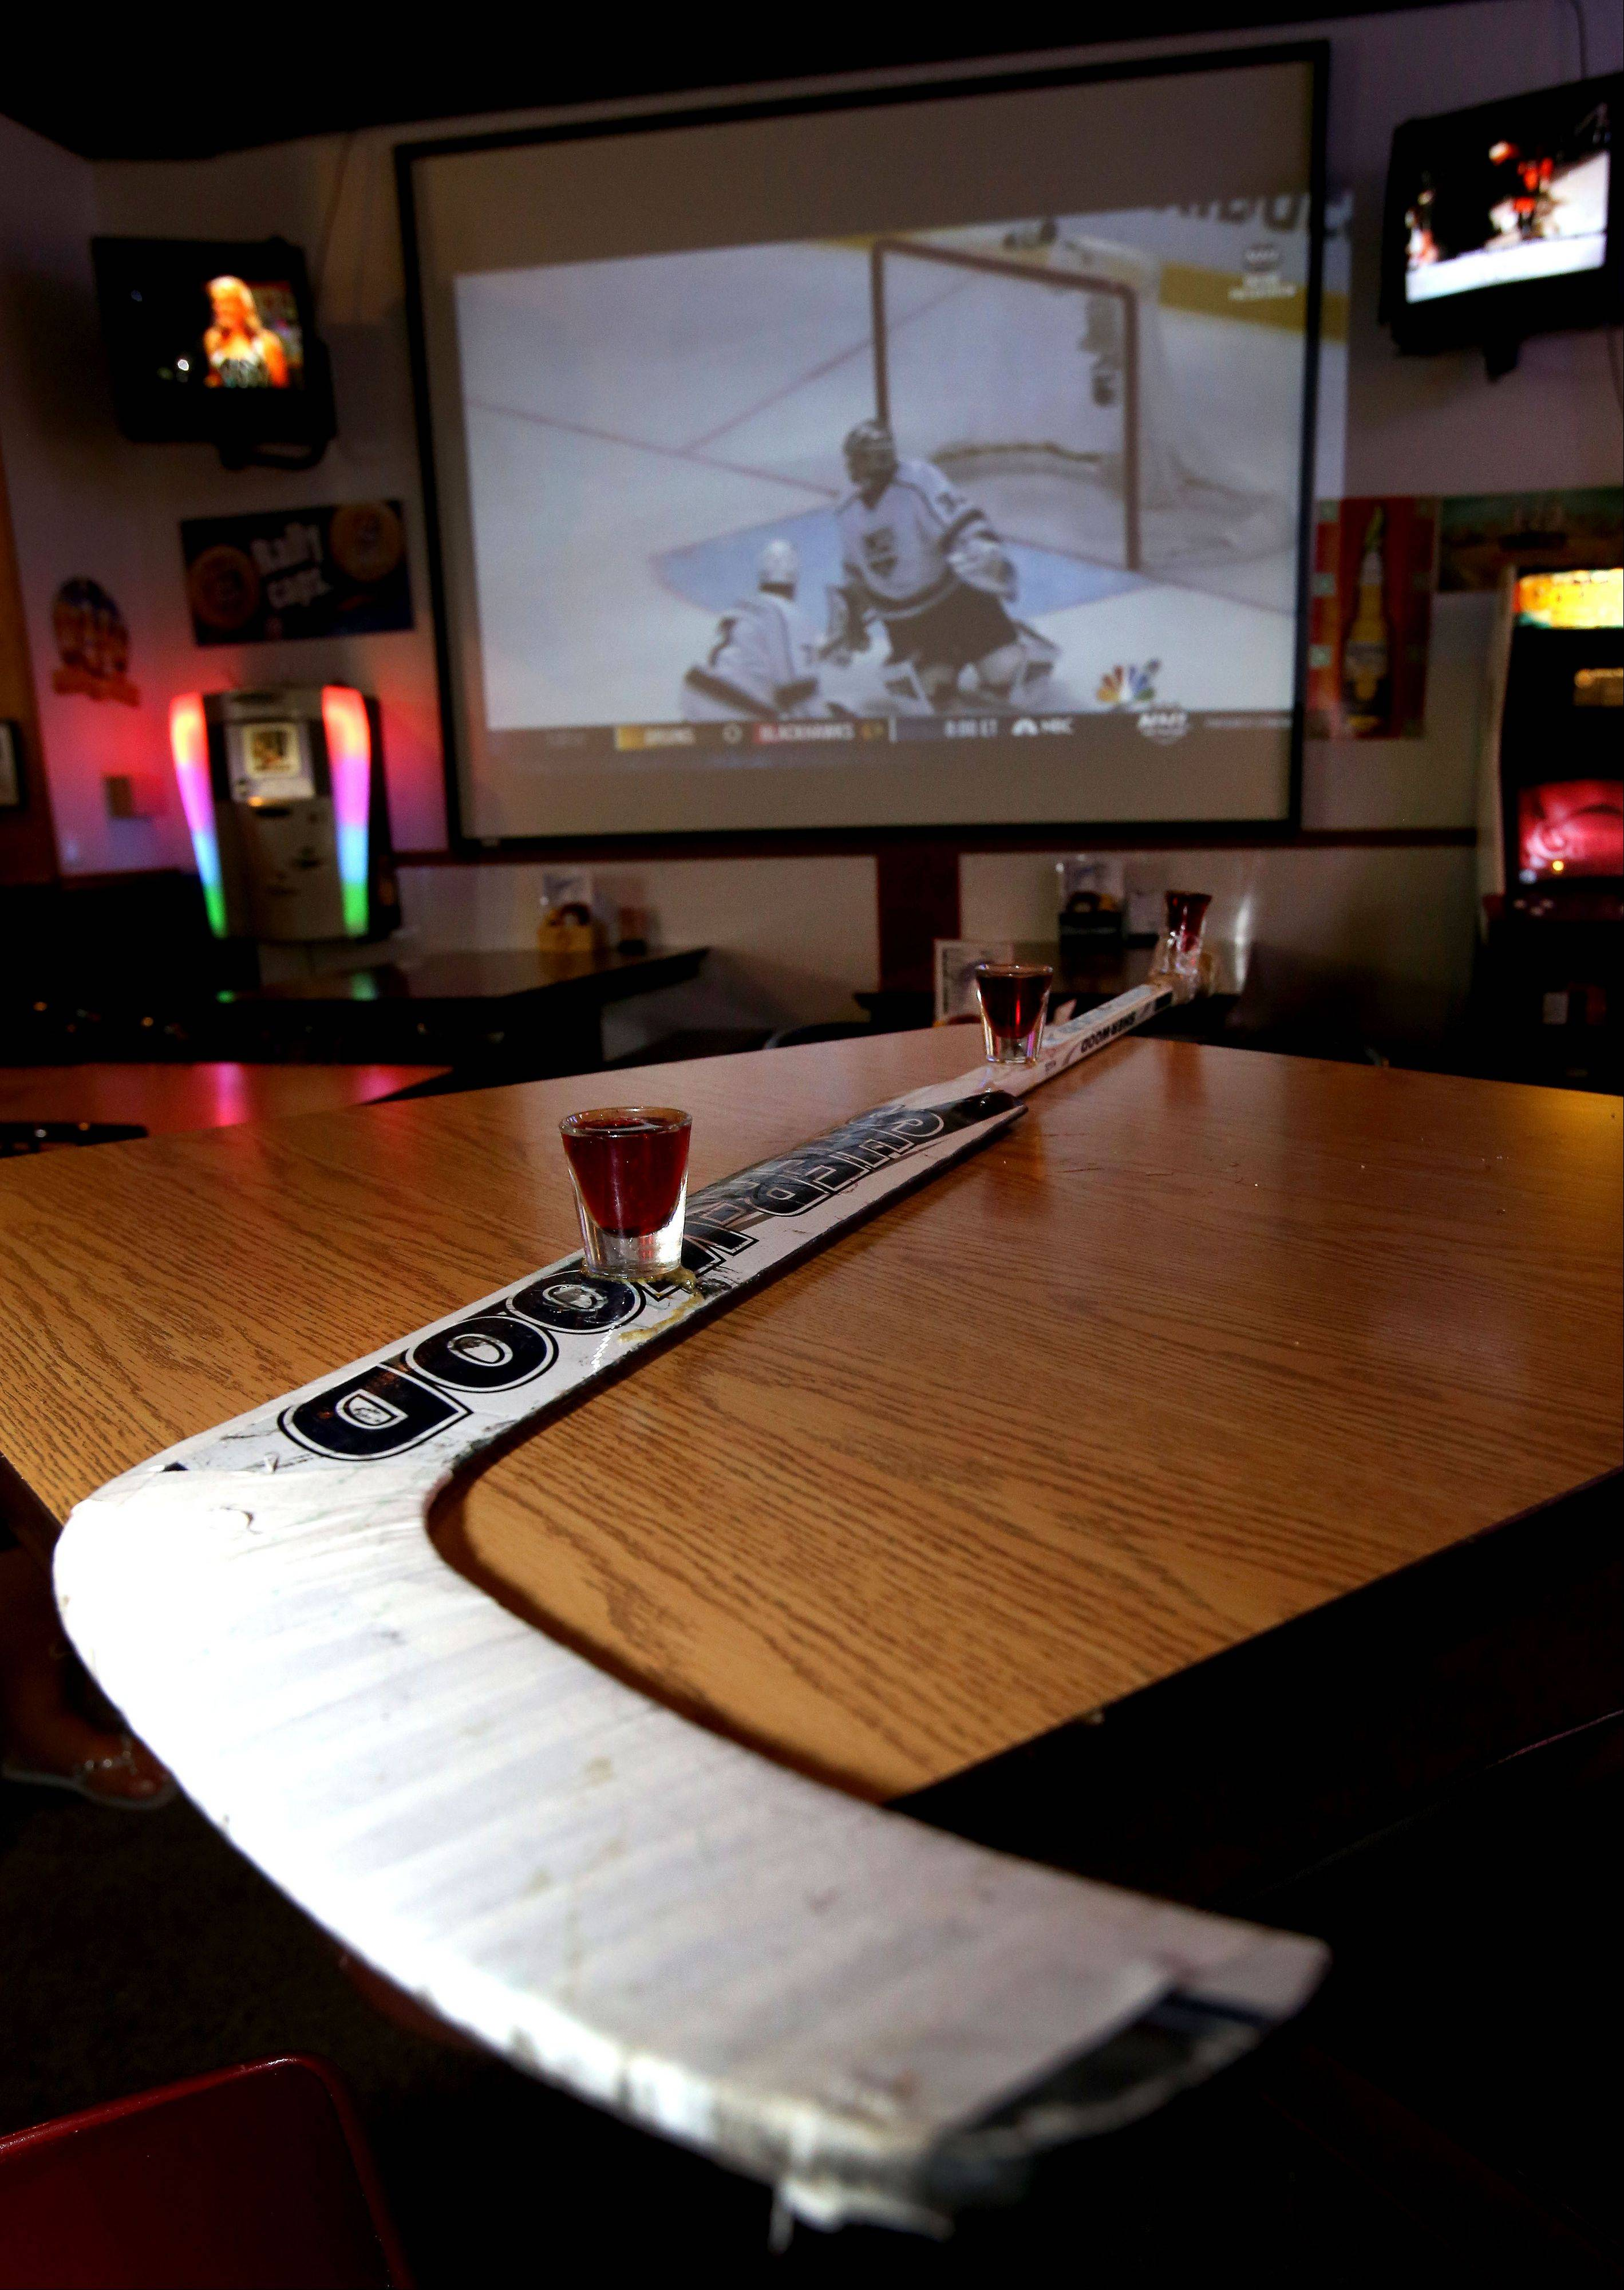 Fans can do shots from a hockey stick during the game at Blue Line Bar & Grill in Addison.